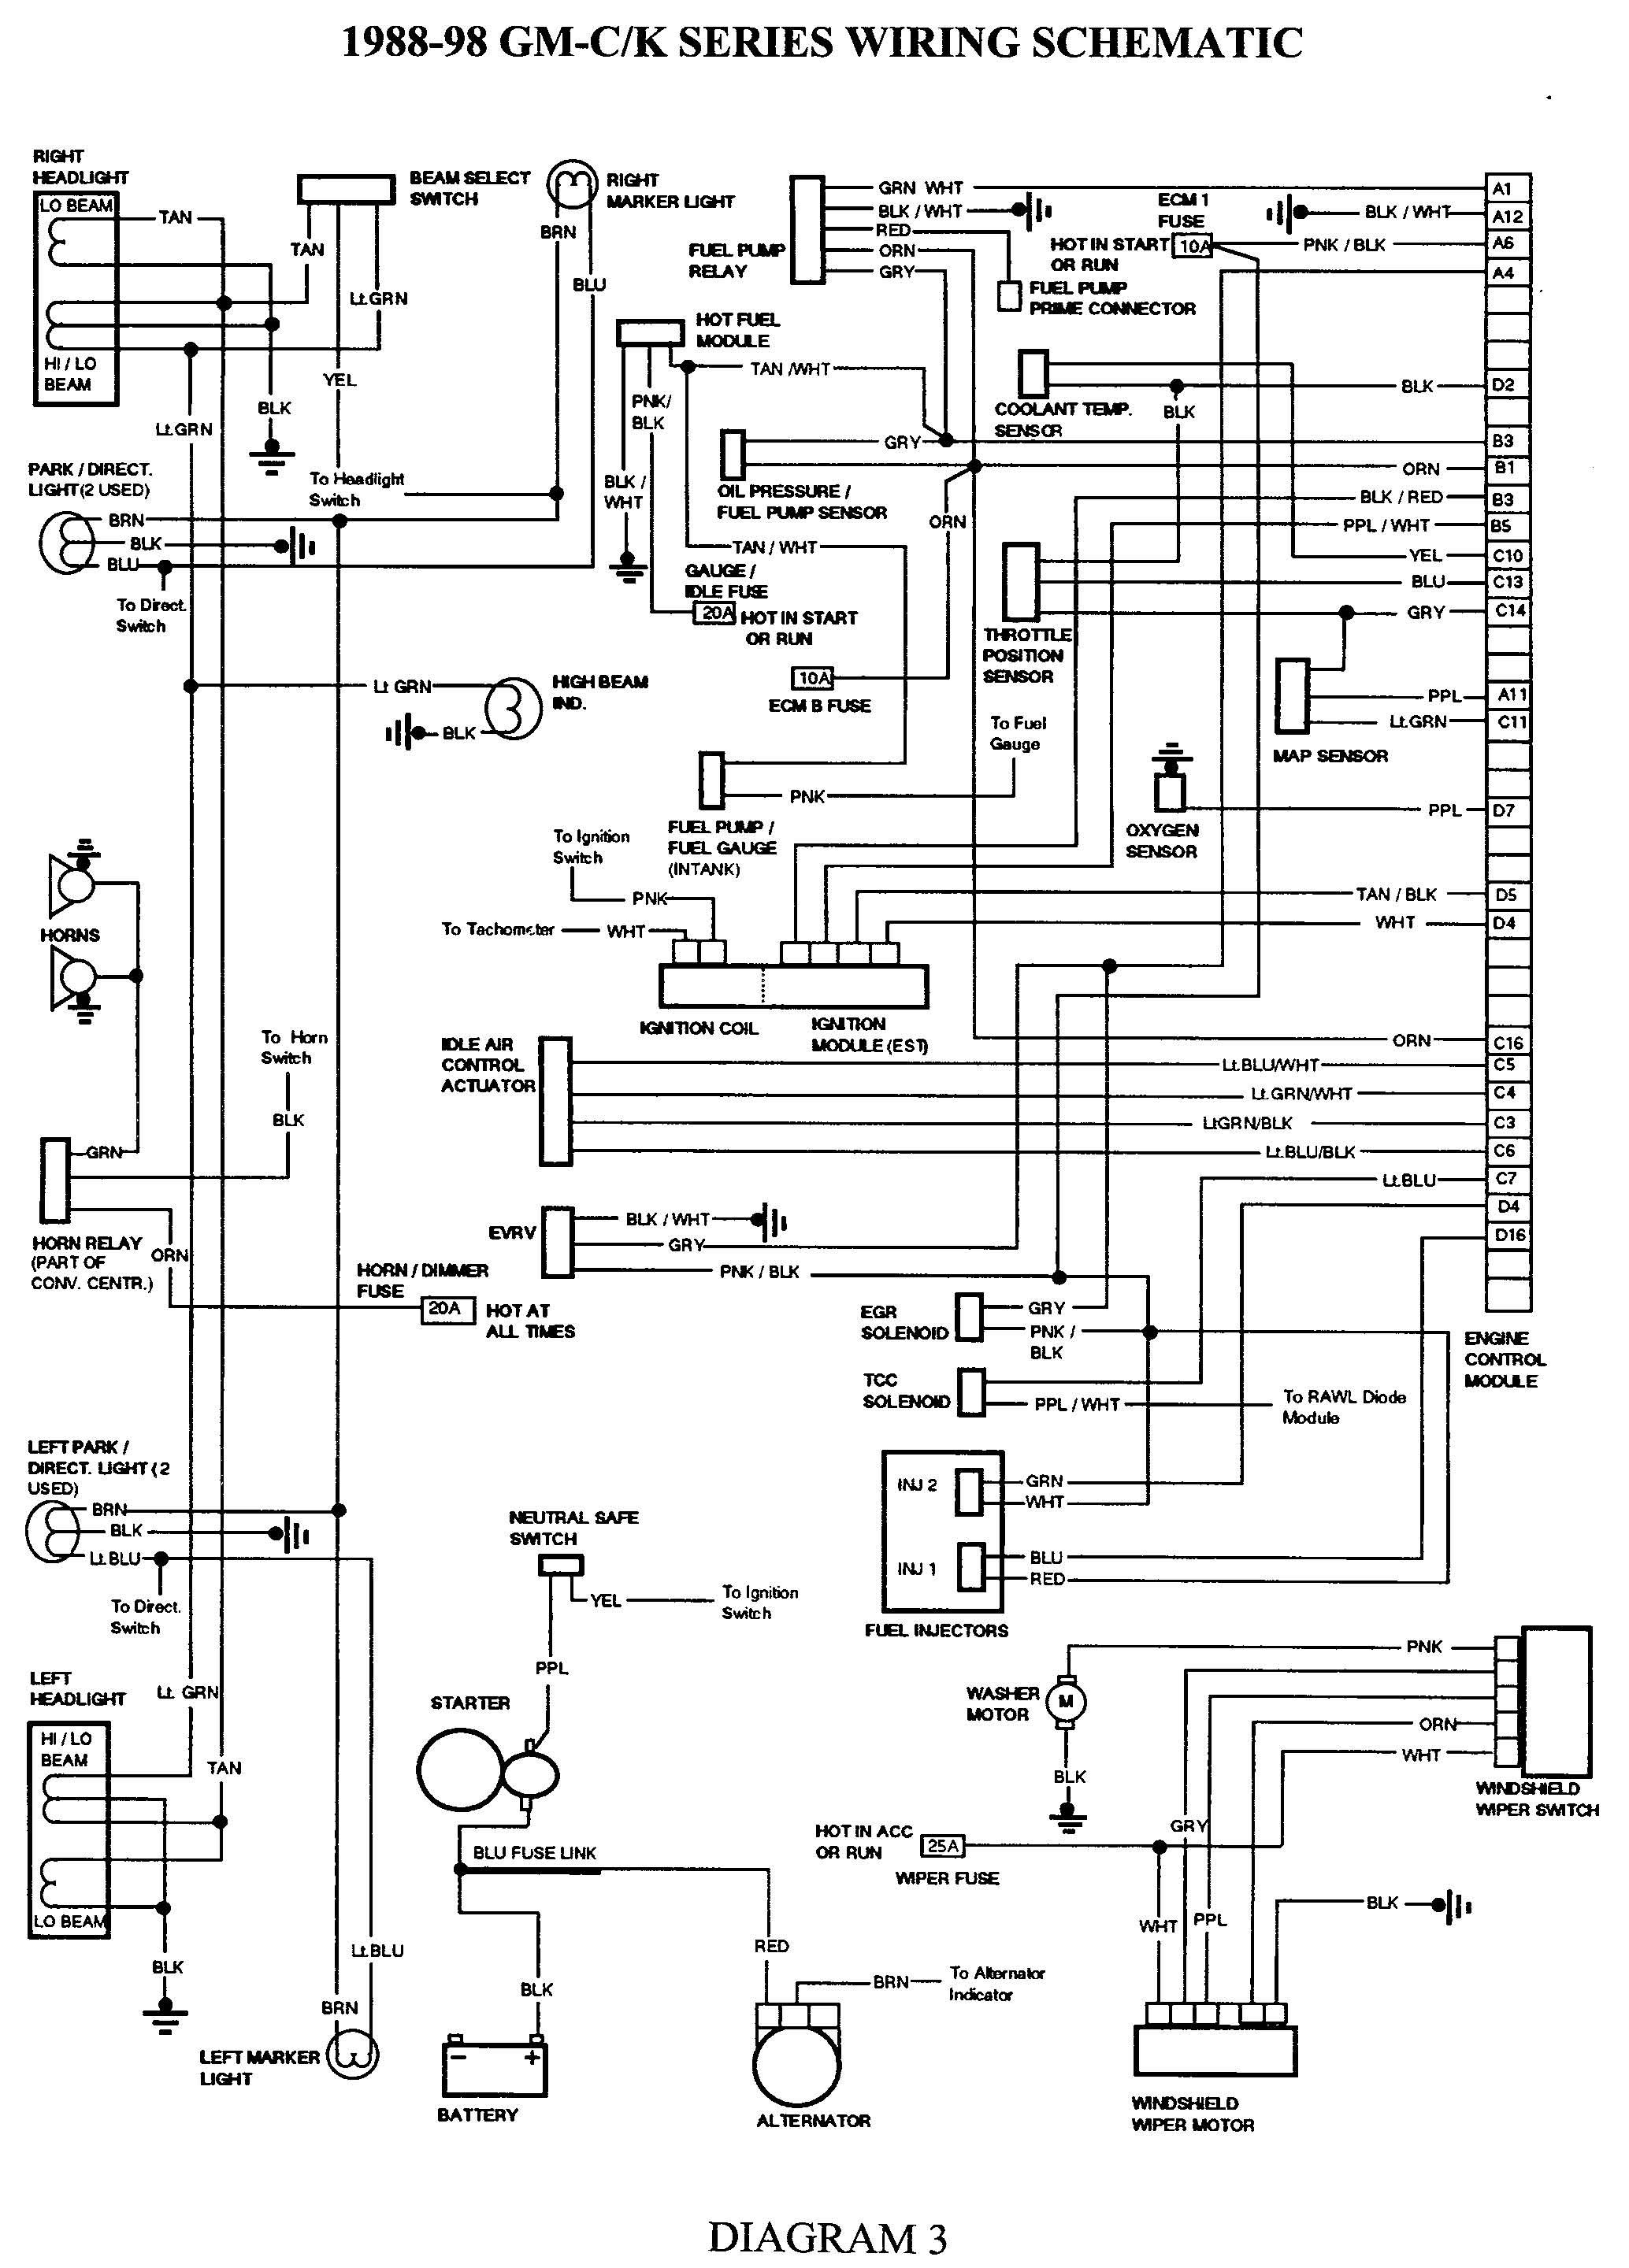 89 Chevy 4x4 Wiring Diagram Opinions About Wiring Diagram \u2022 2002 GMC  Radio Wiring Diagram Chevy 4wd Wiring Diagram